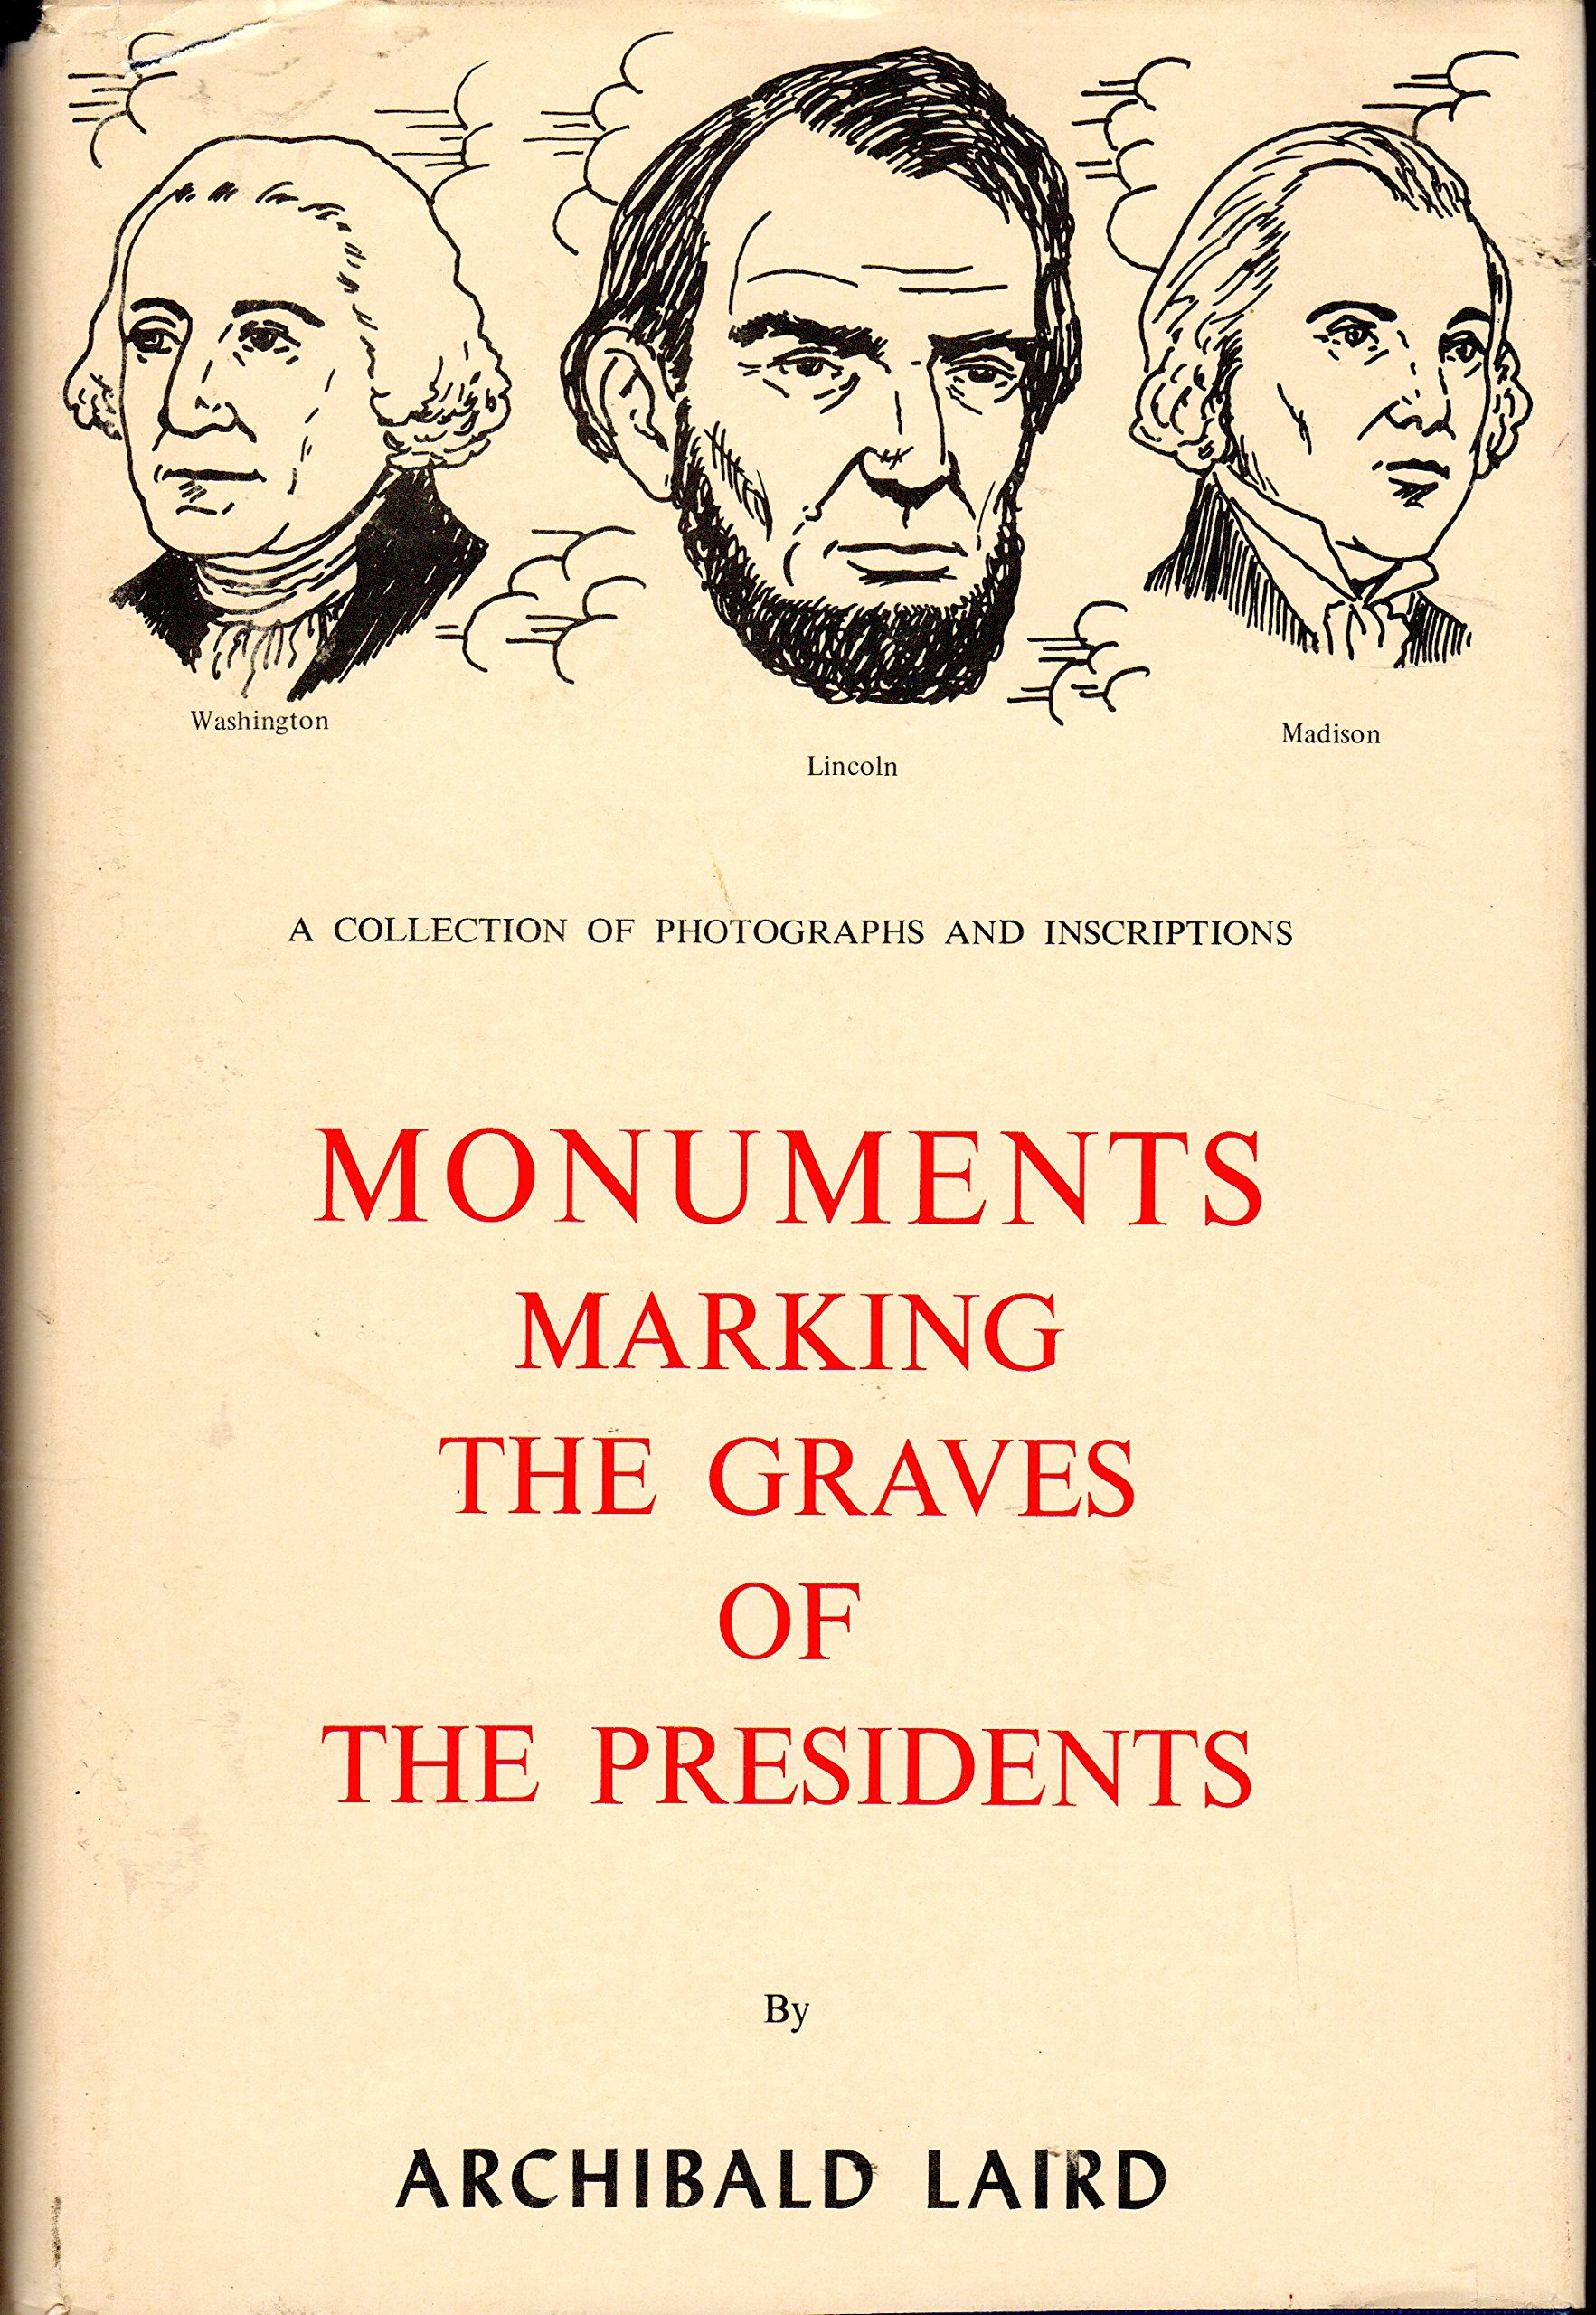 Monuments Marking the Graves of the Presidents: A Collection of Photographs and Inscriptions PDF